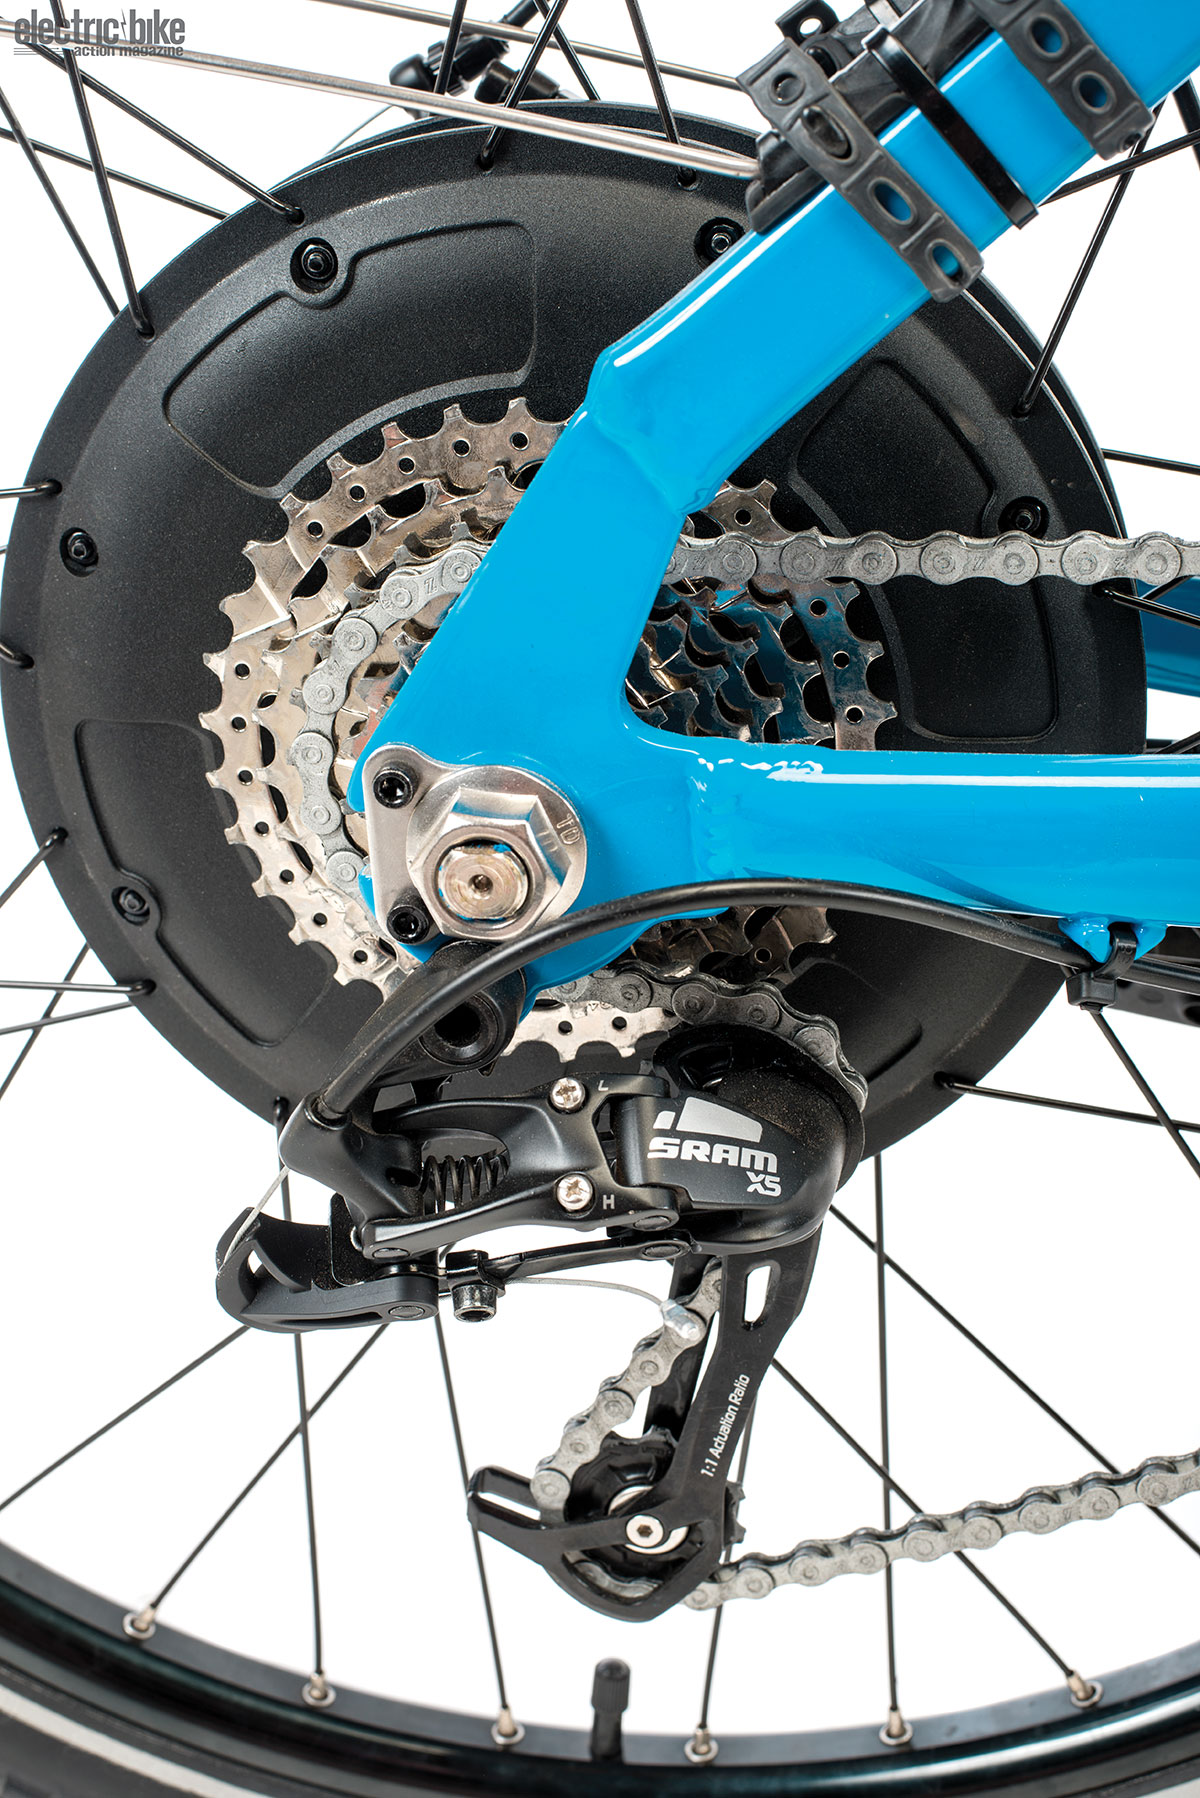 A SRAM X5 eight-speed rear cassette was reliable and a very nice touch on this bike.